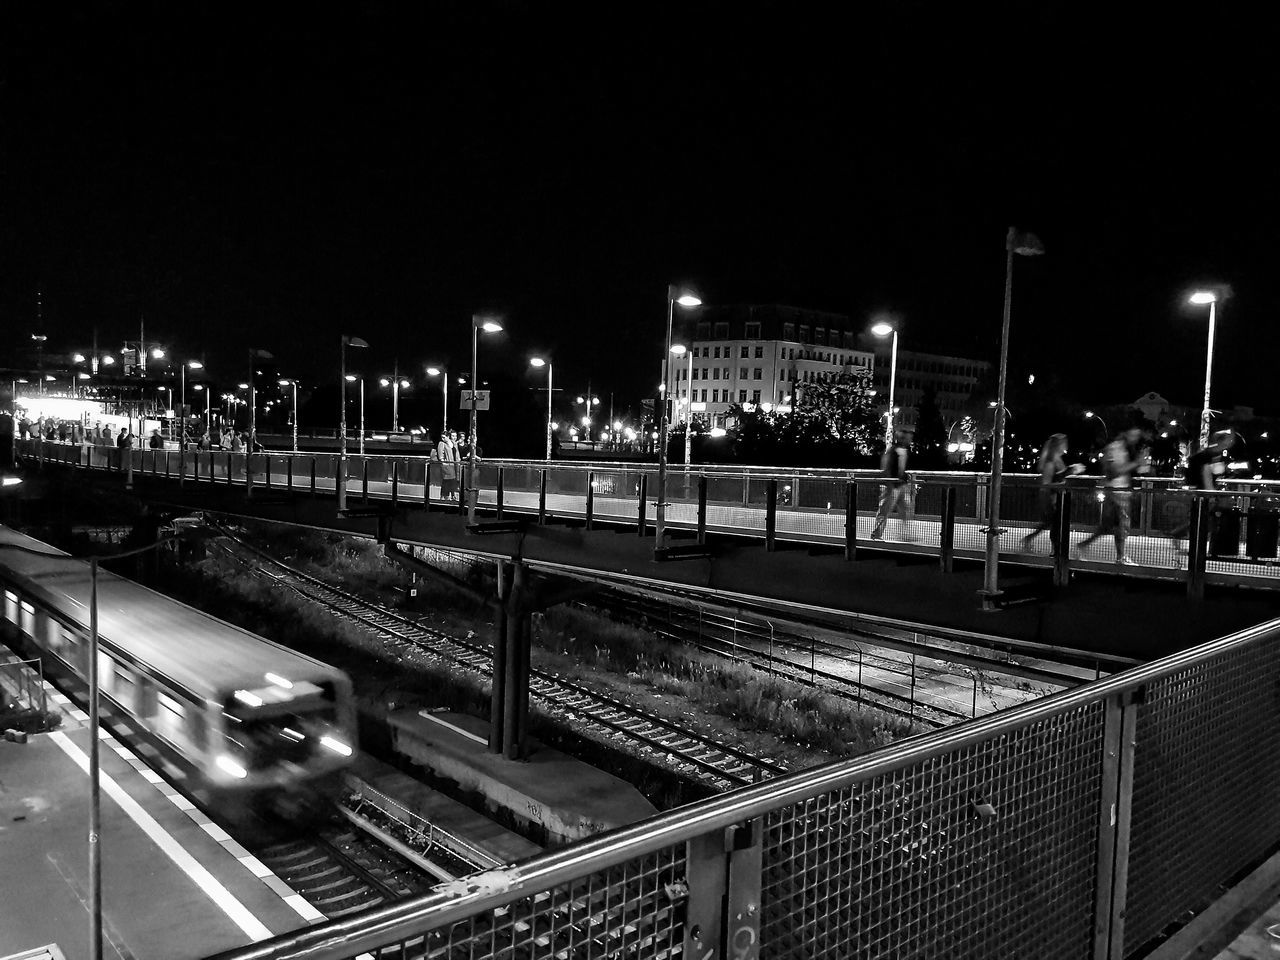 night, illuminated, transportation, rail transportation, railroad track, outdoors, built structure, architecture, clear sky, building exterior, no people, city, sky